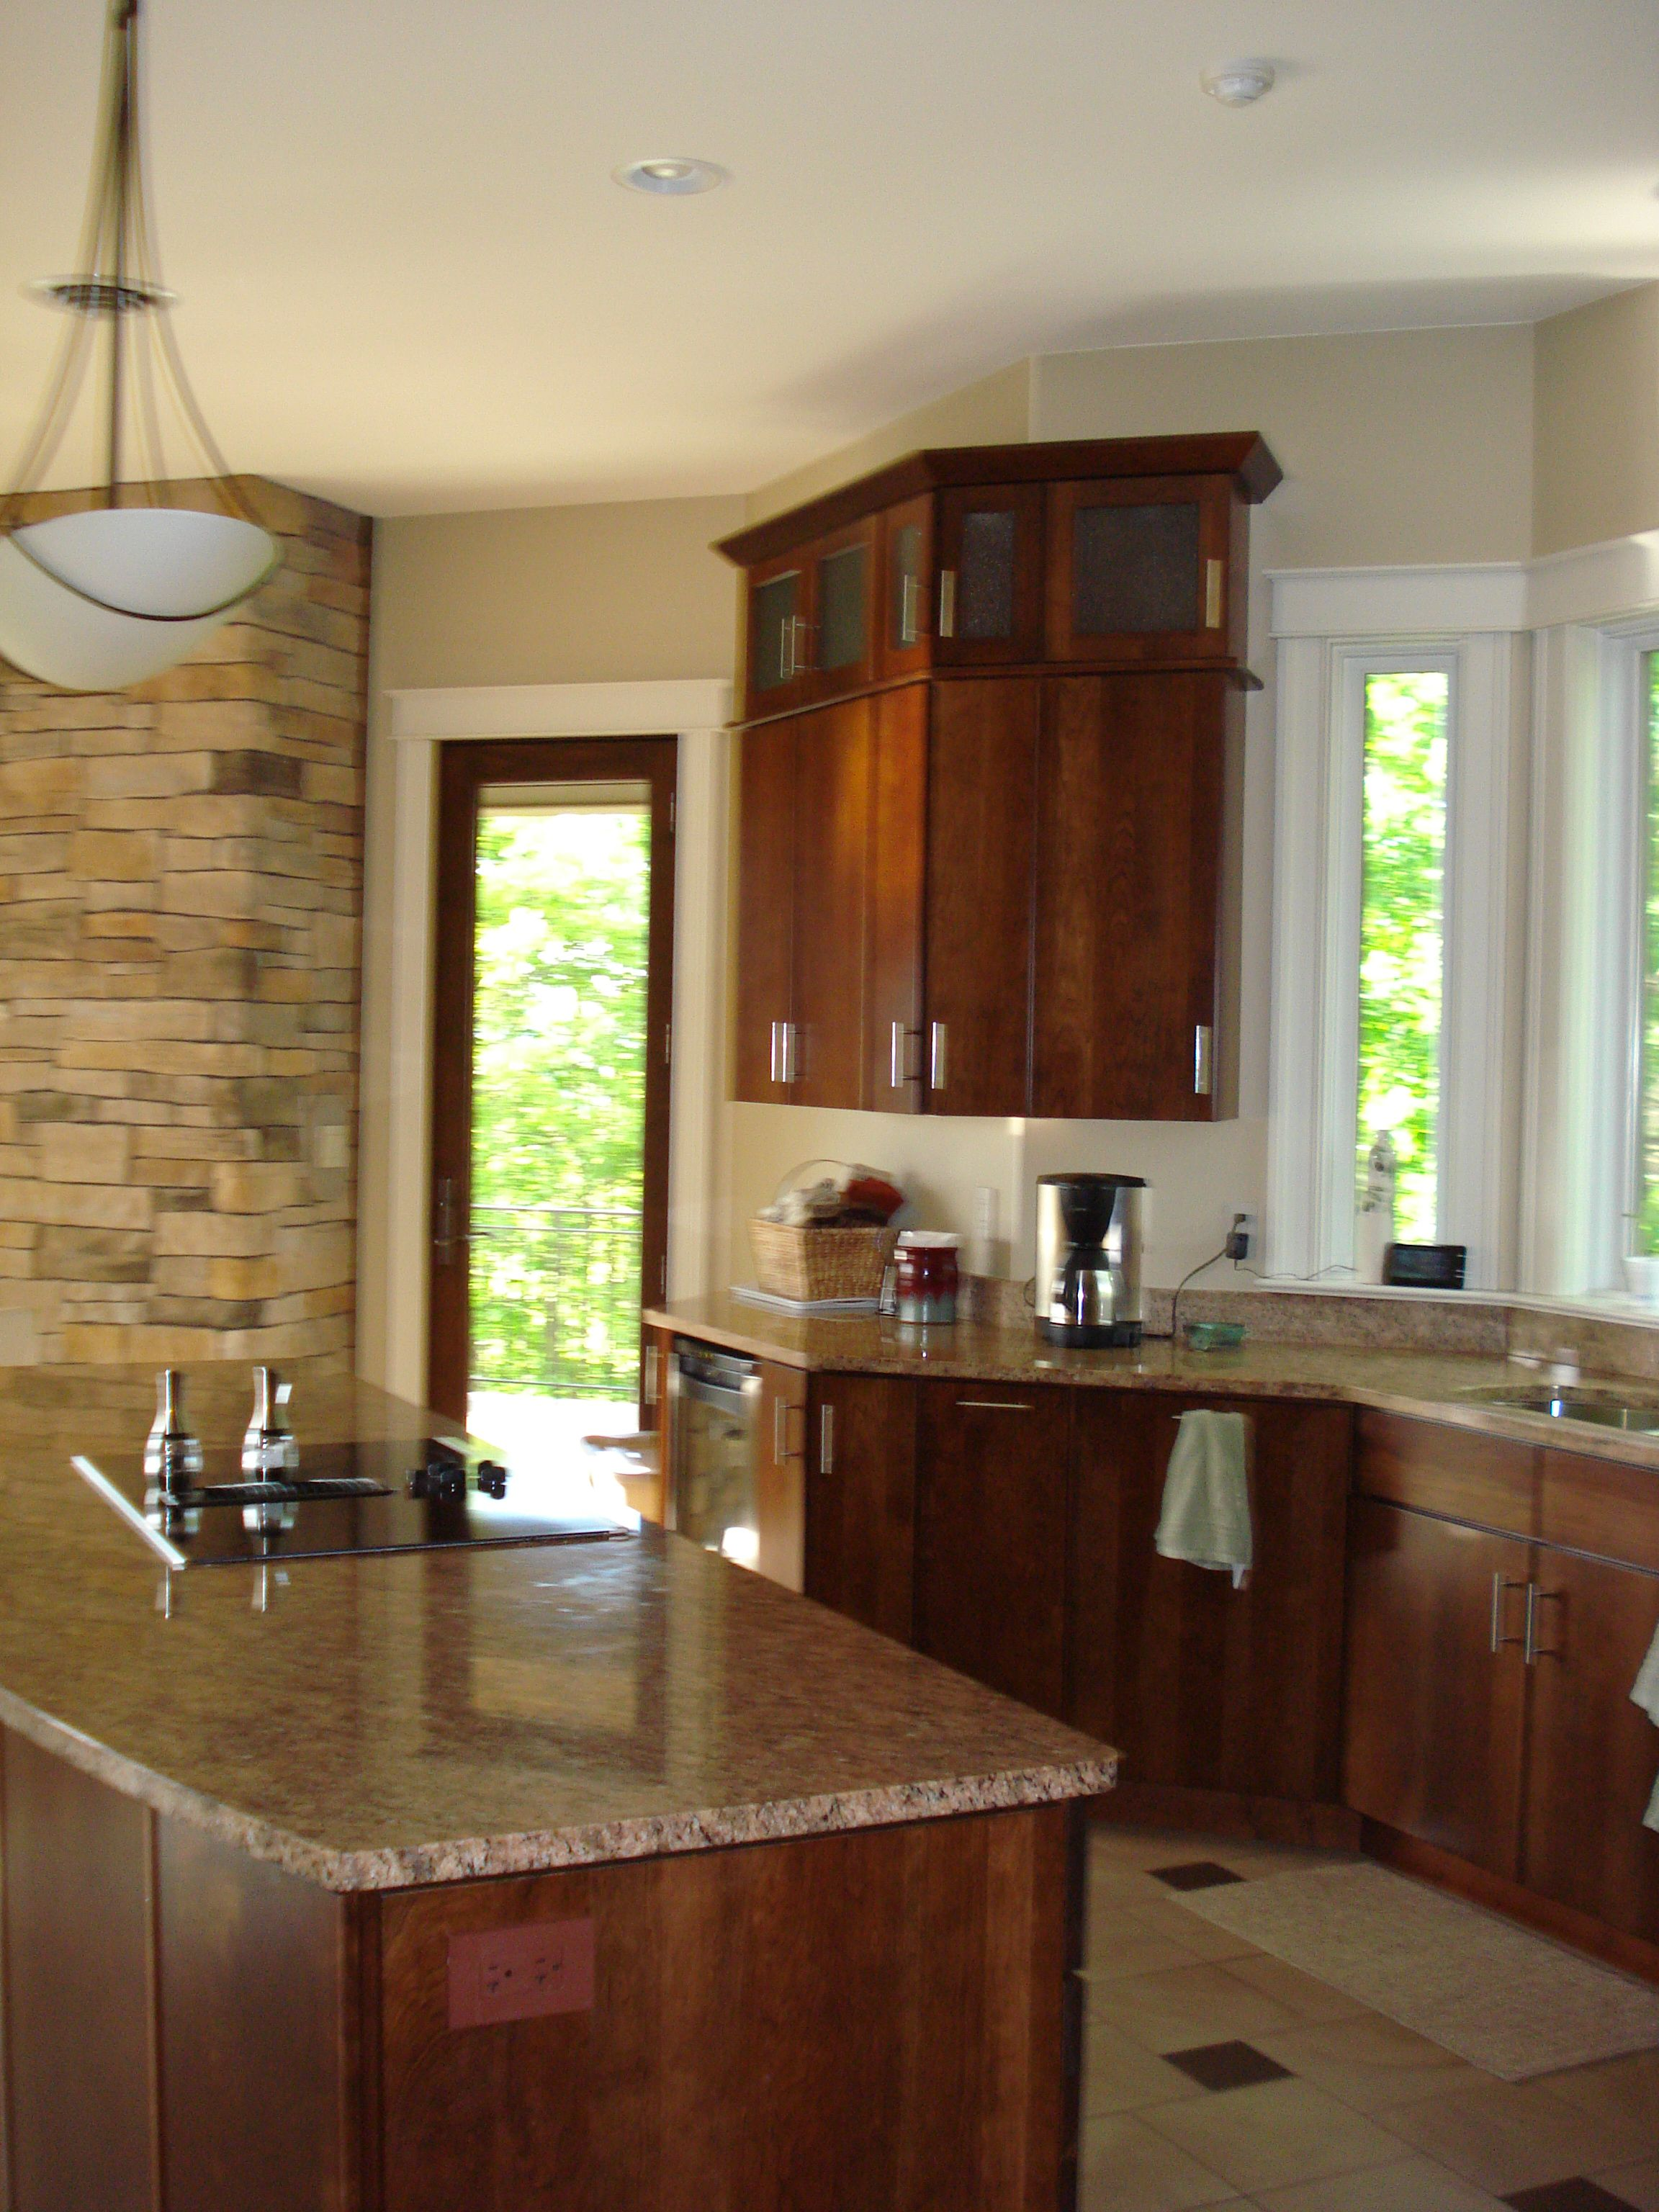 Kitchen Cabinets With Black Trim Dark Cabinets White Trim Real House Projects Kitchen